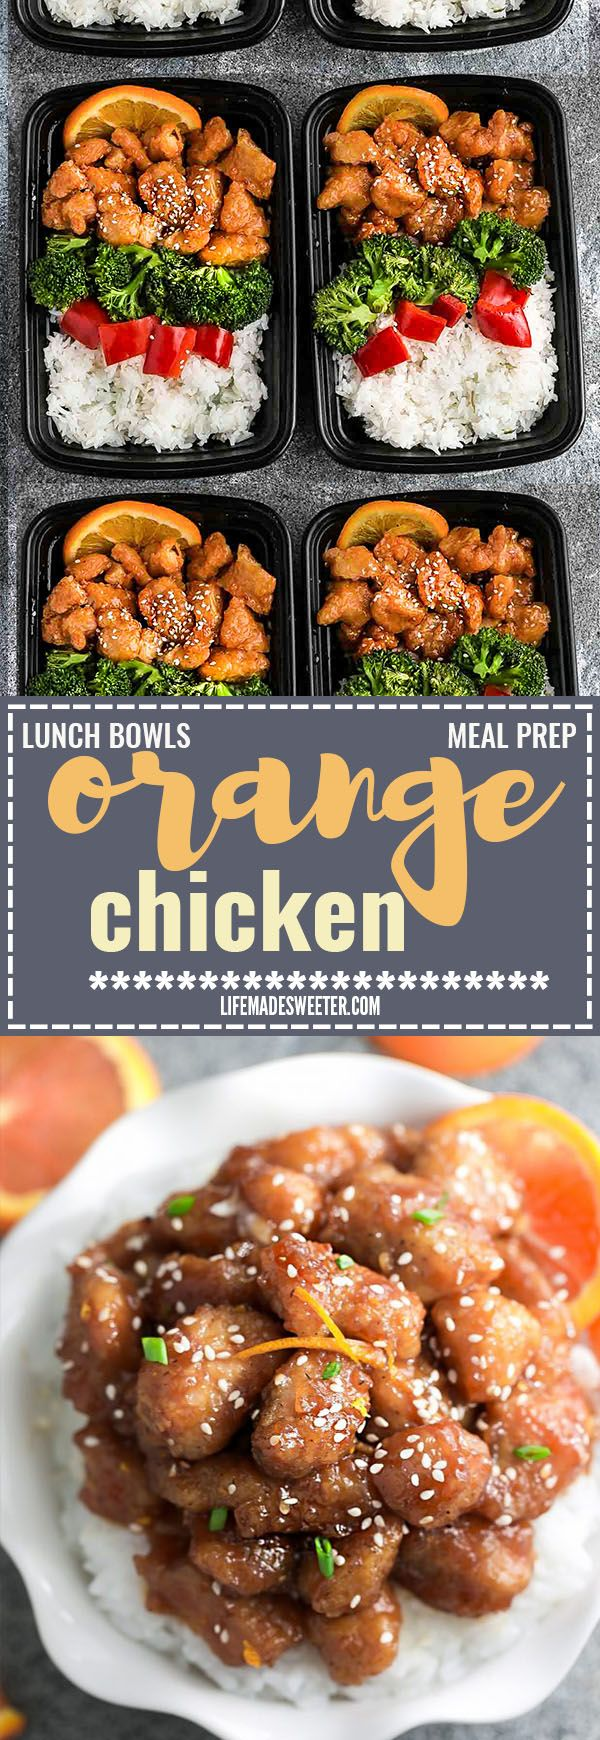 Slow Cooker Orange Chicken Meal Prep Lunch Bowls - coated in a citrus sweet & savory sauce that is even better than your local takeout restaurant! Best of all, it's full of authentic flavors and super easy to make with just 15 minutes of prep time. Skip that takeout menu! This is so much better and healthier! Weekly meal prep for the week and leftovers are great for lunch bowls for work or school.